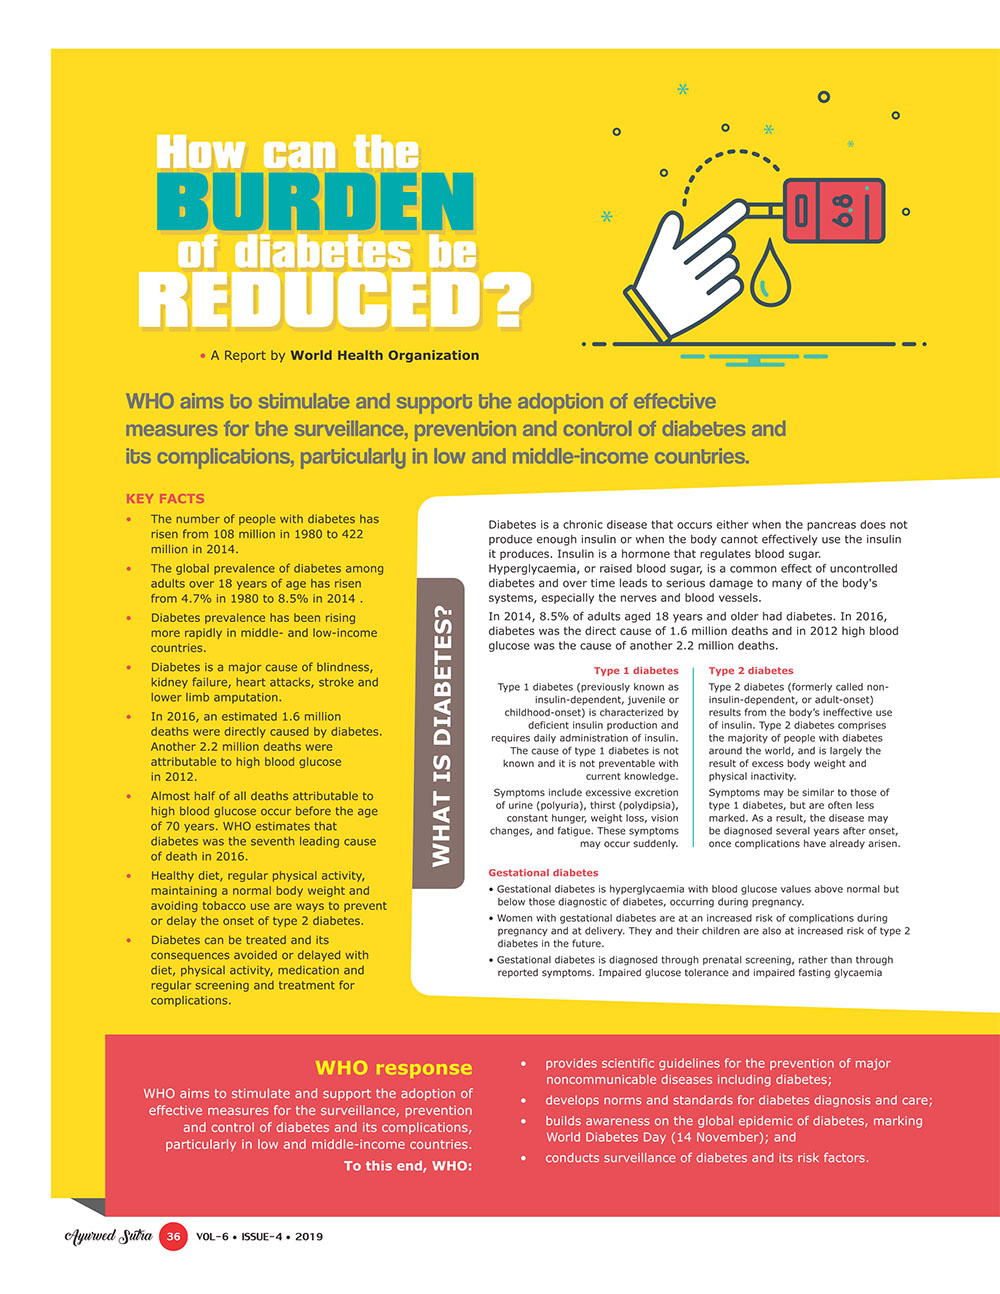 Ayurvedsutra Vol 06 issue 04 38 - How can the burden of diabetes be reduced?